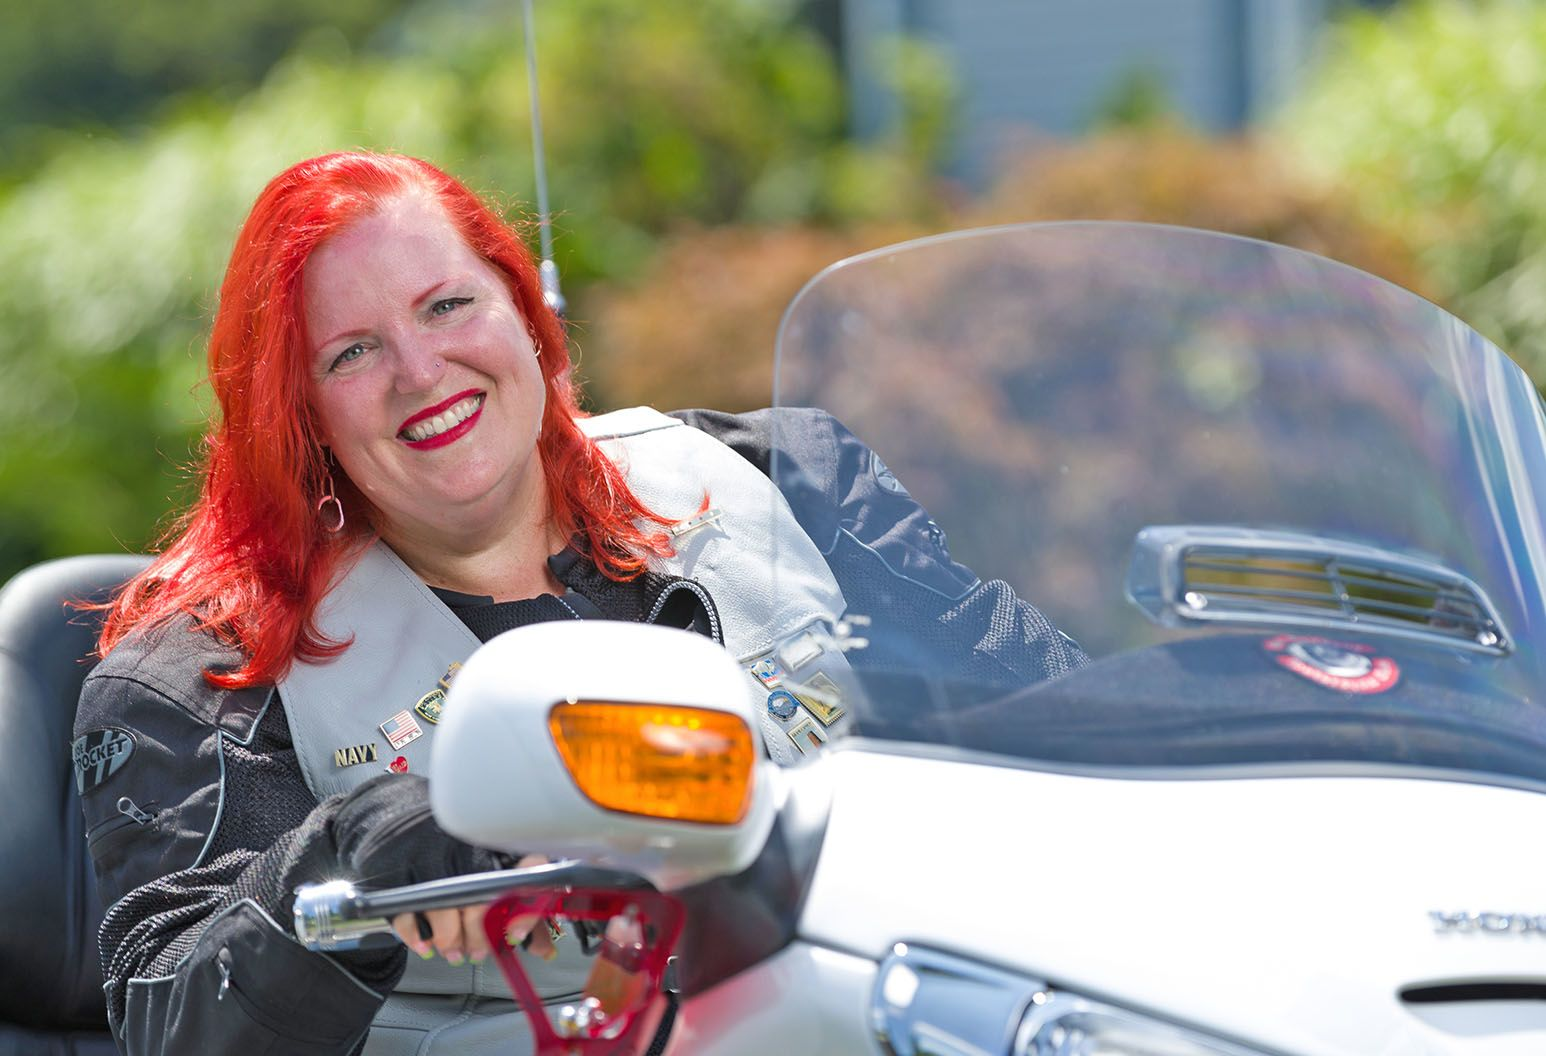 Women with red hair sitting on motorcycle